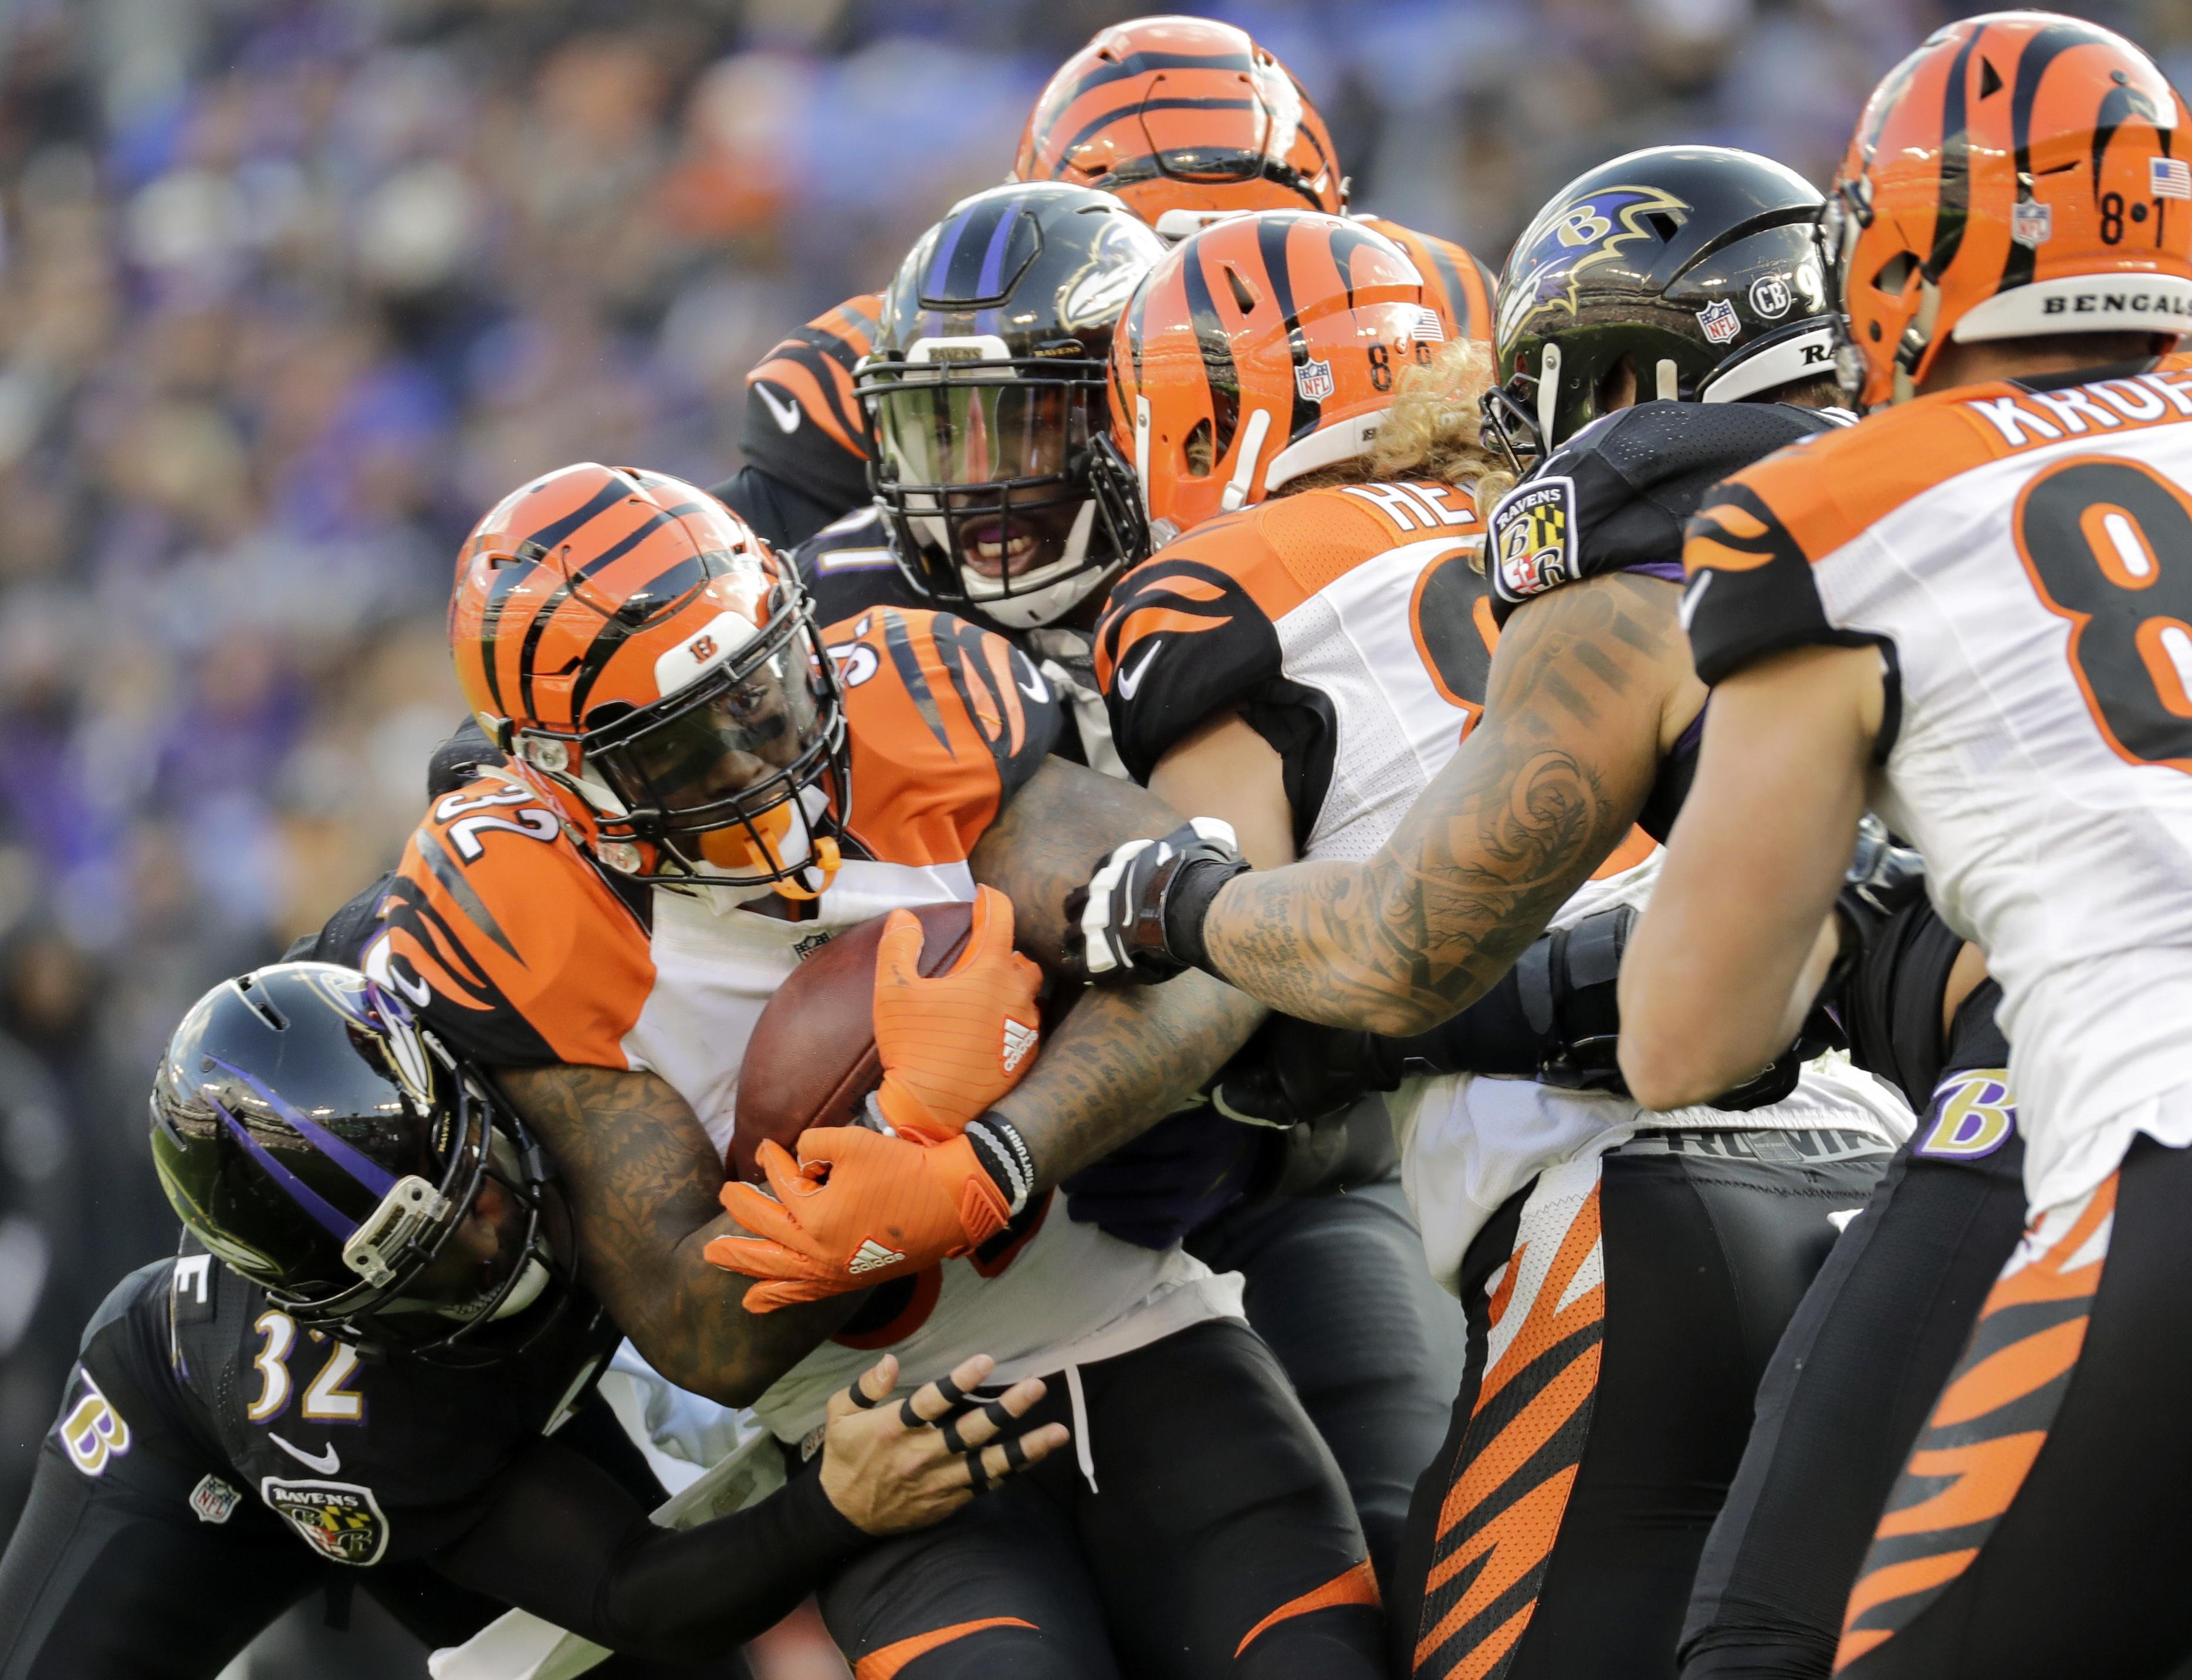 Bengals_running_in_place_football